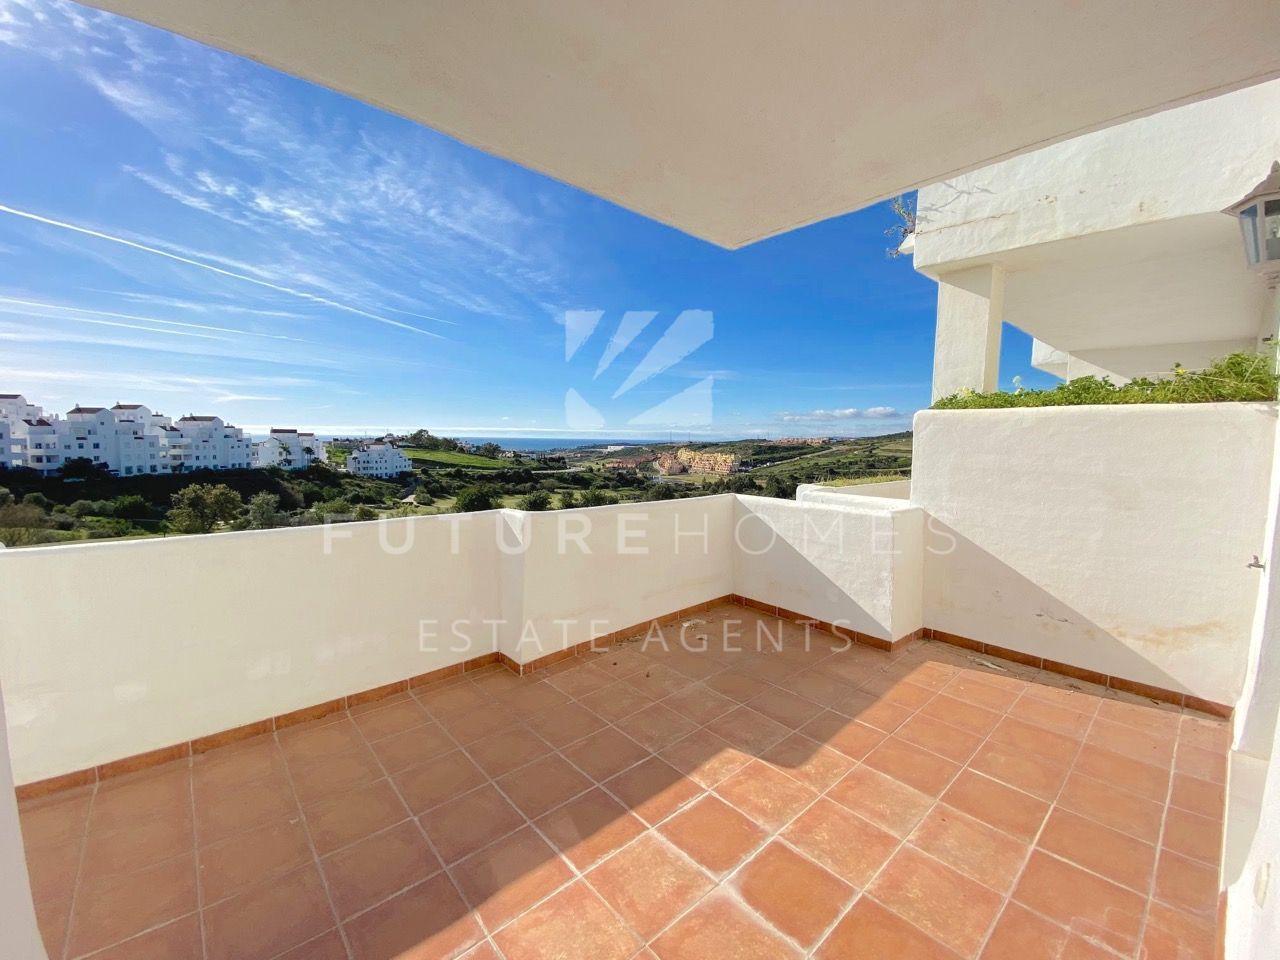 Frontline golf duplex for sale in Valle Romano Estepona